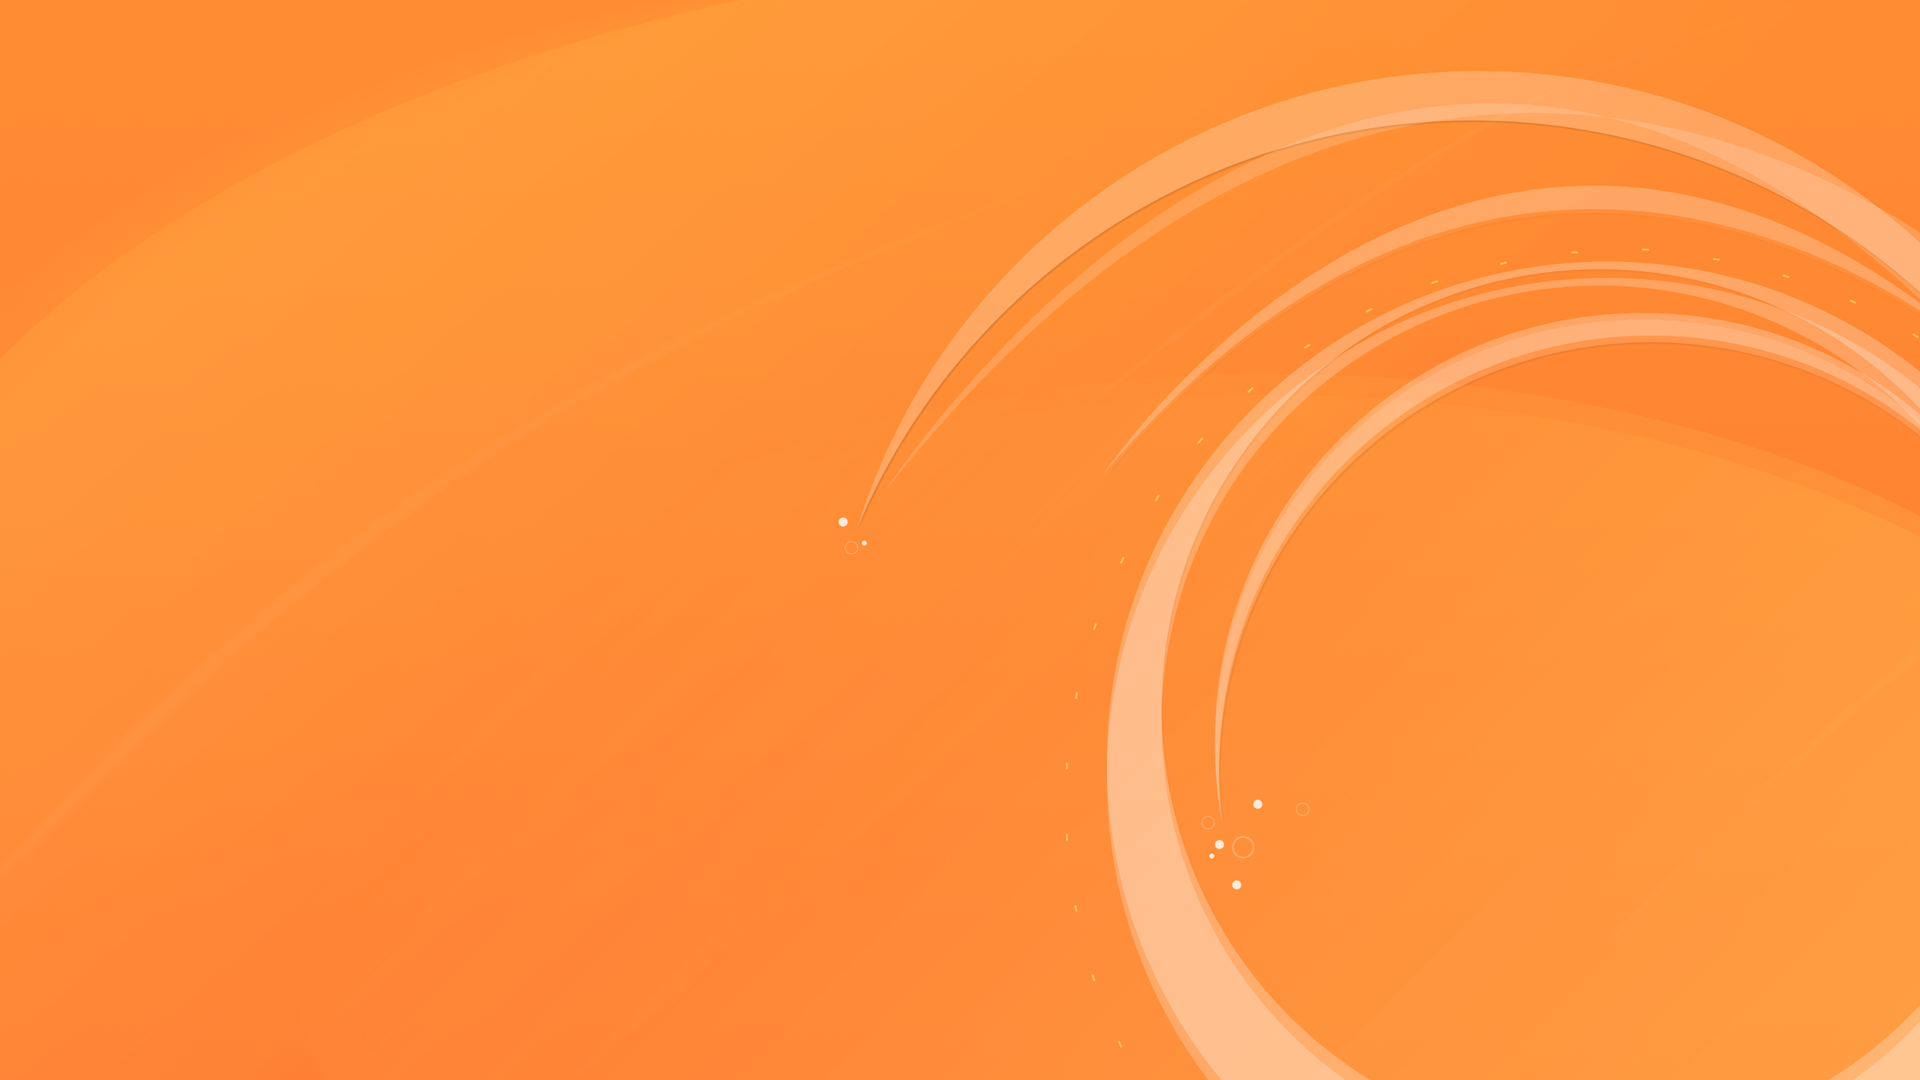 Circular Orange Wallpaper